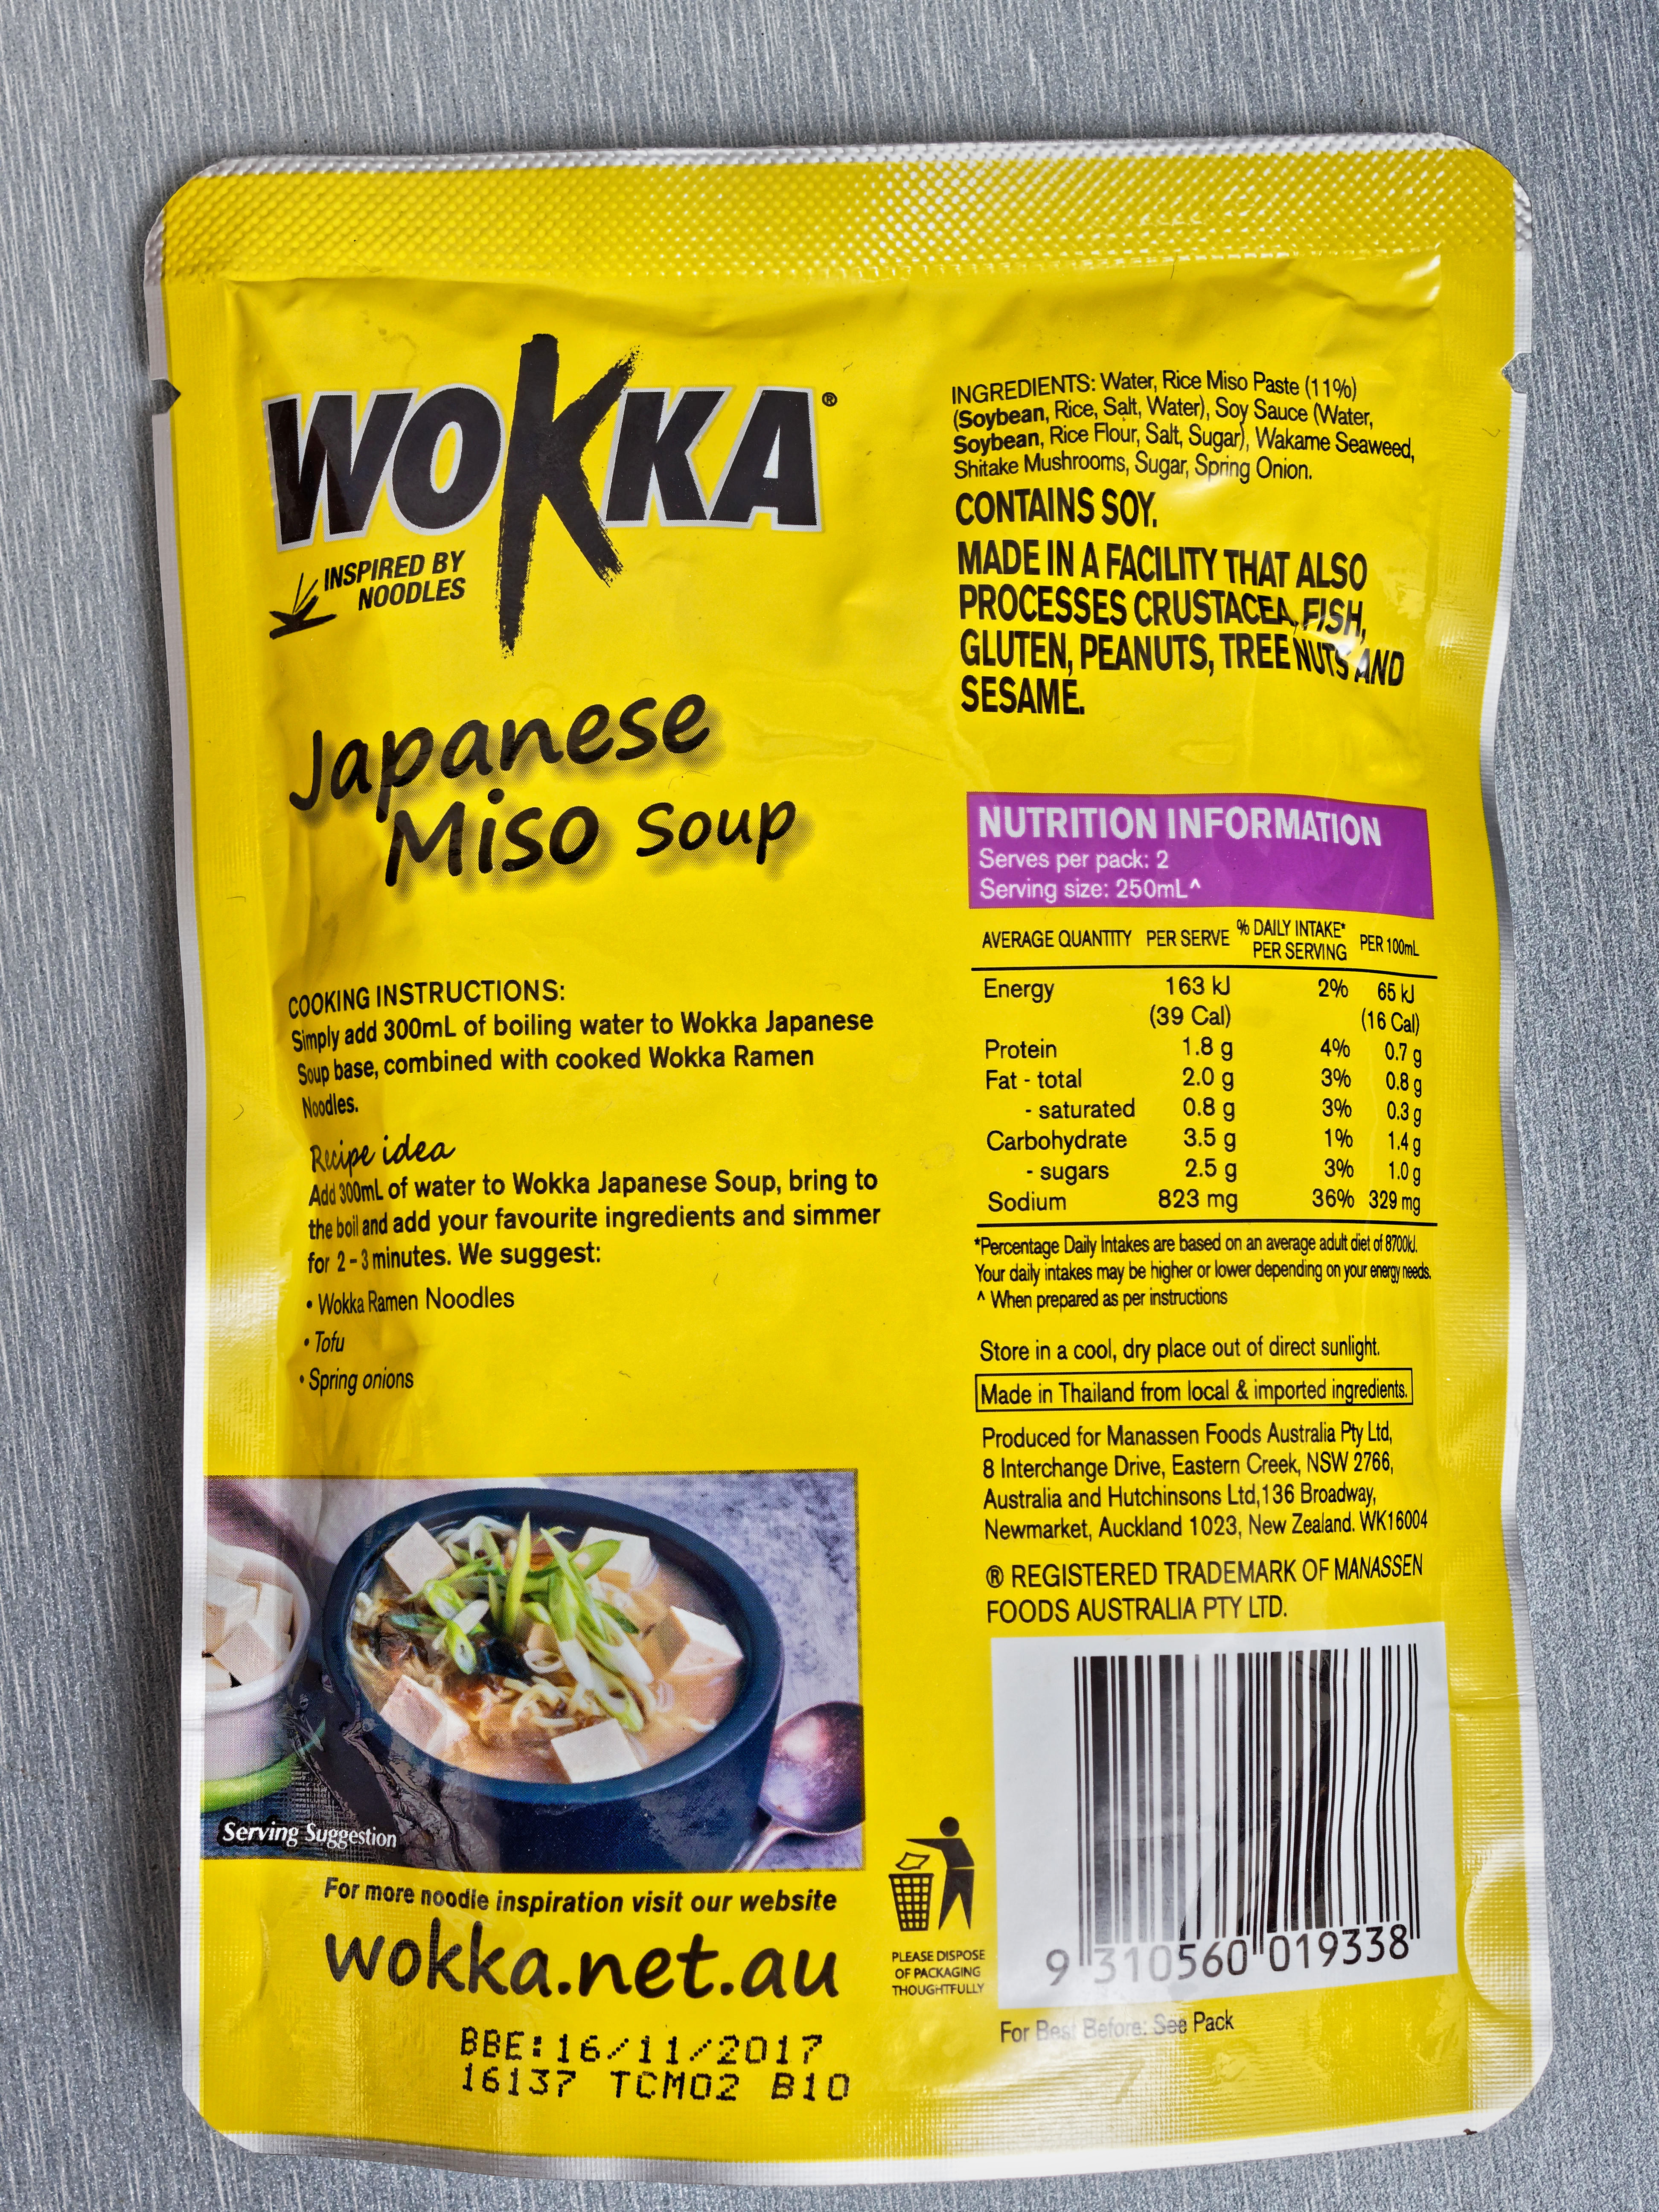 This should be Wokka-Miso-soup-2.jpeg.  Is it missing?